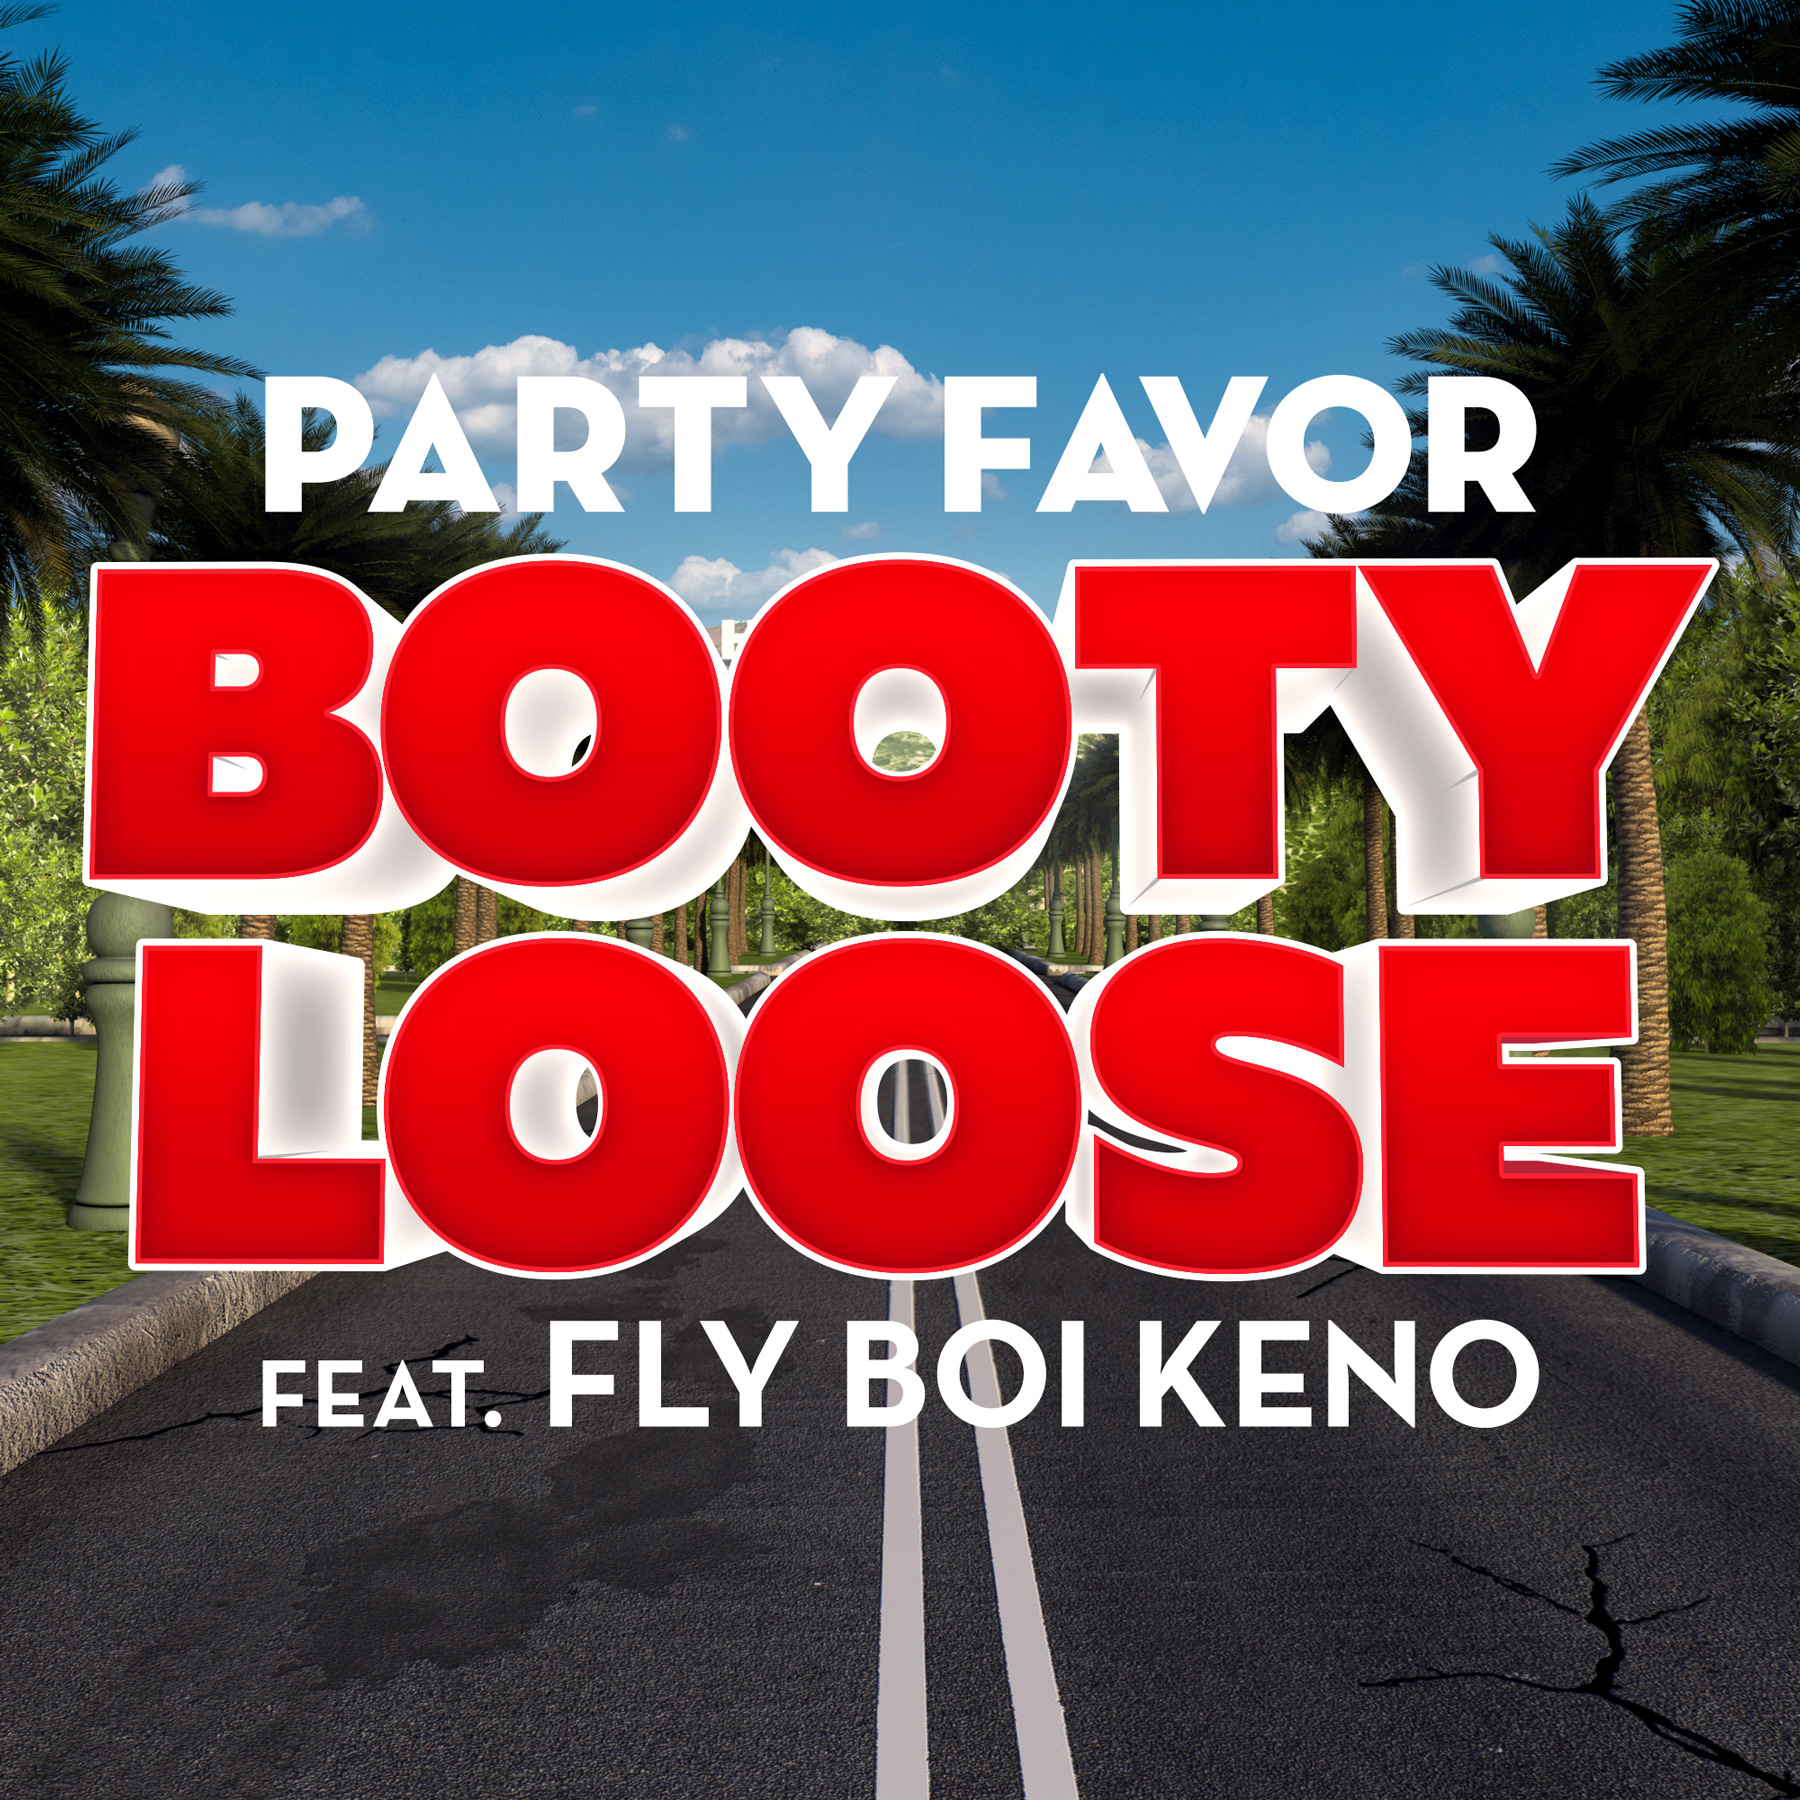 Fly boy keno soldier download